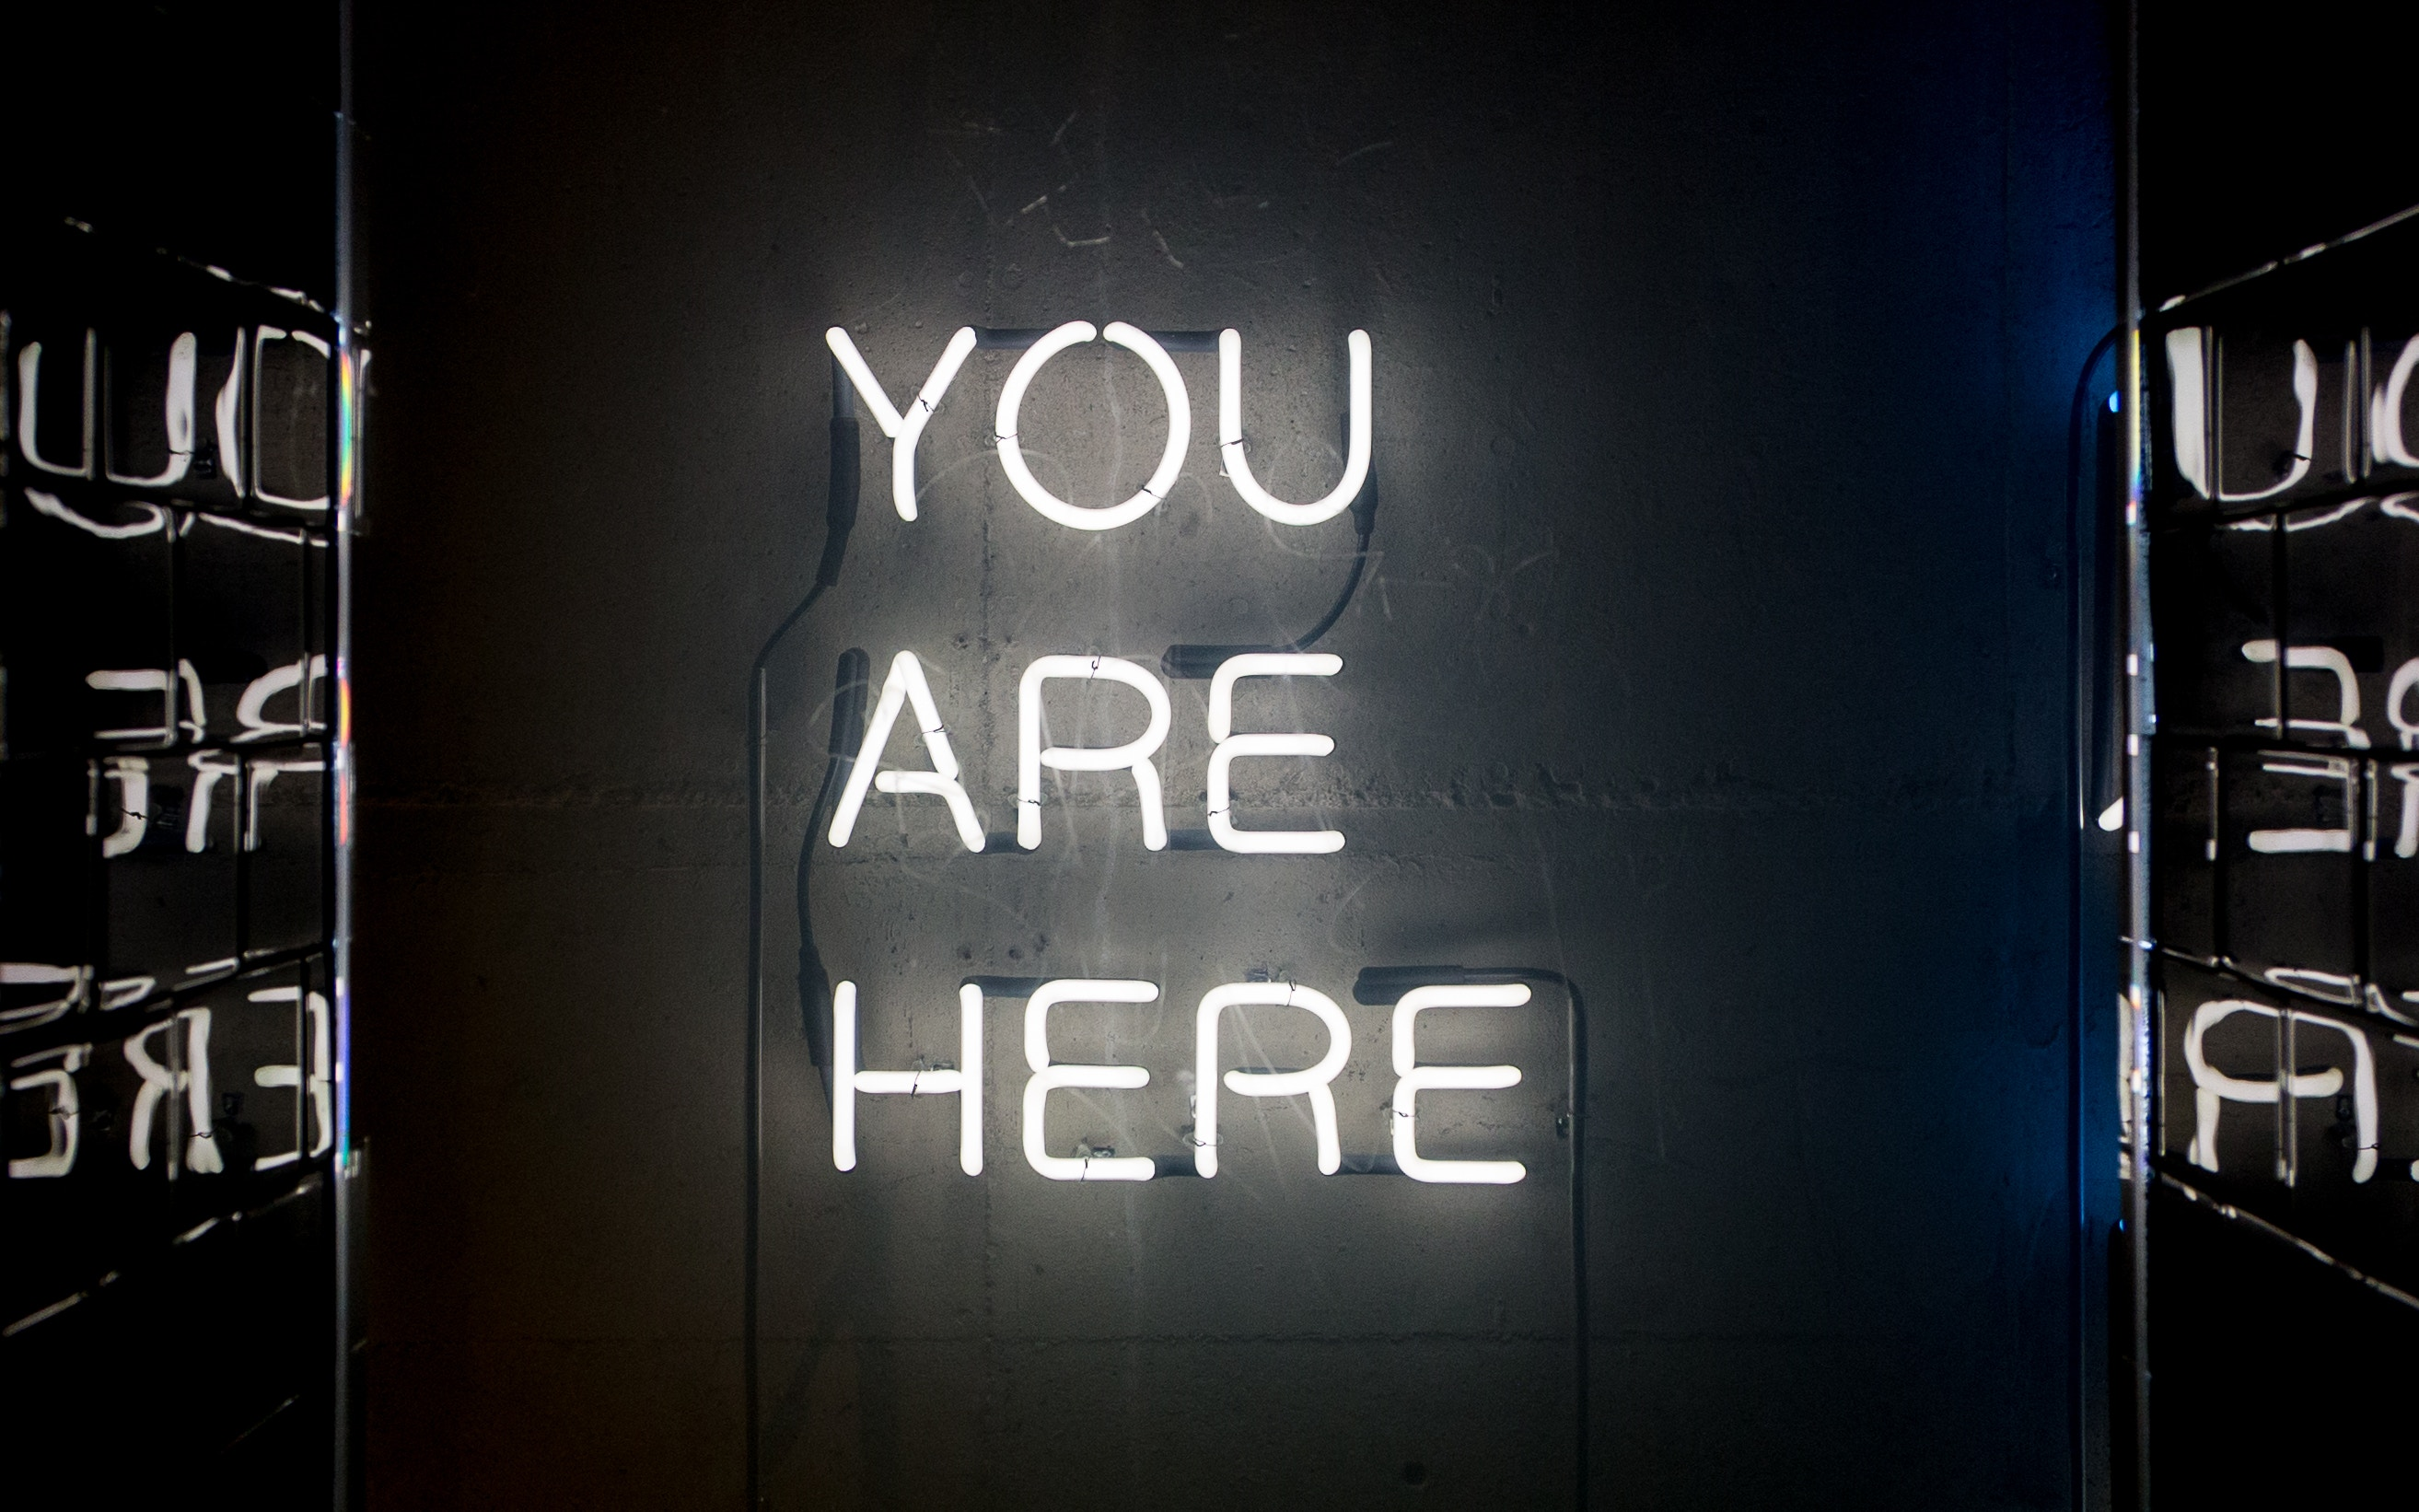 You are here message